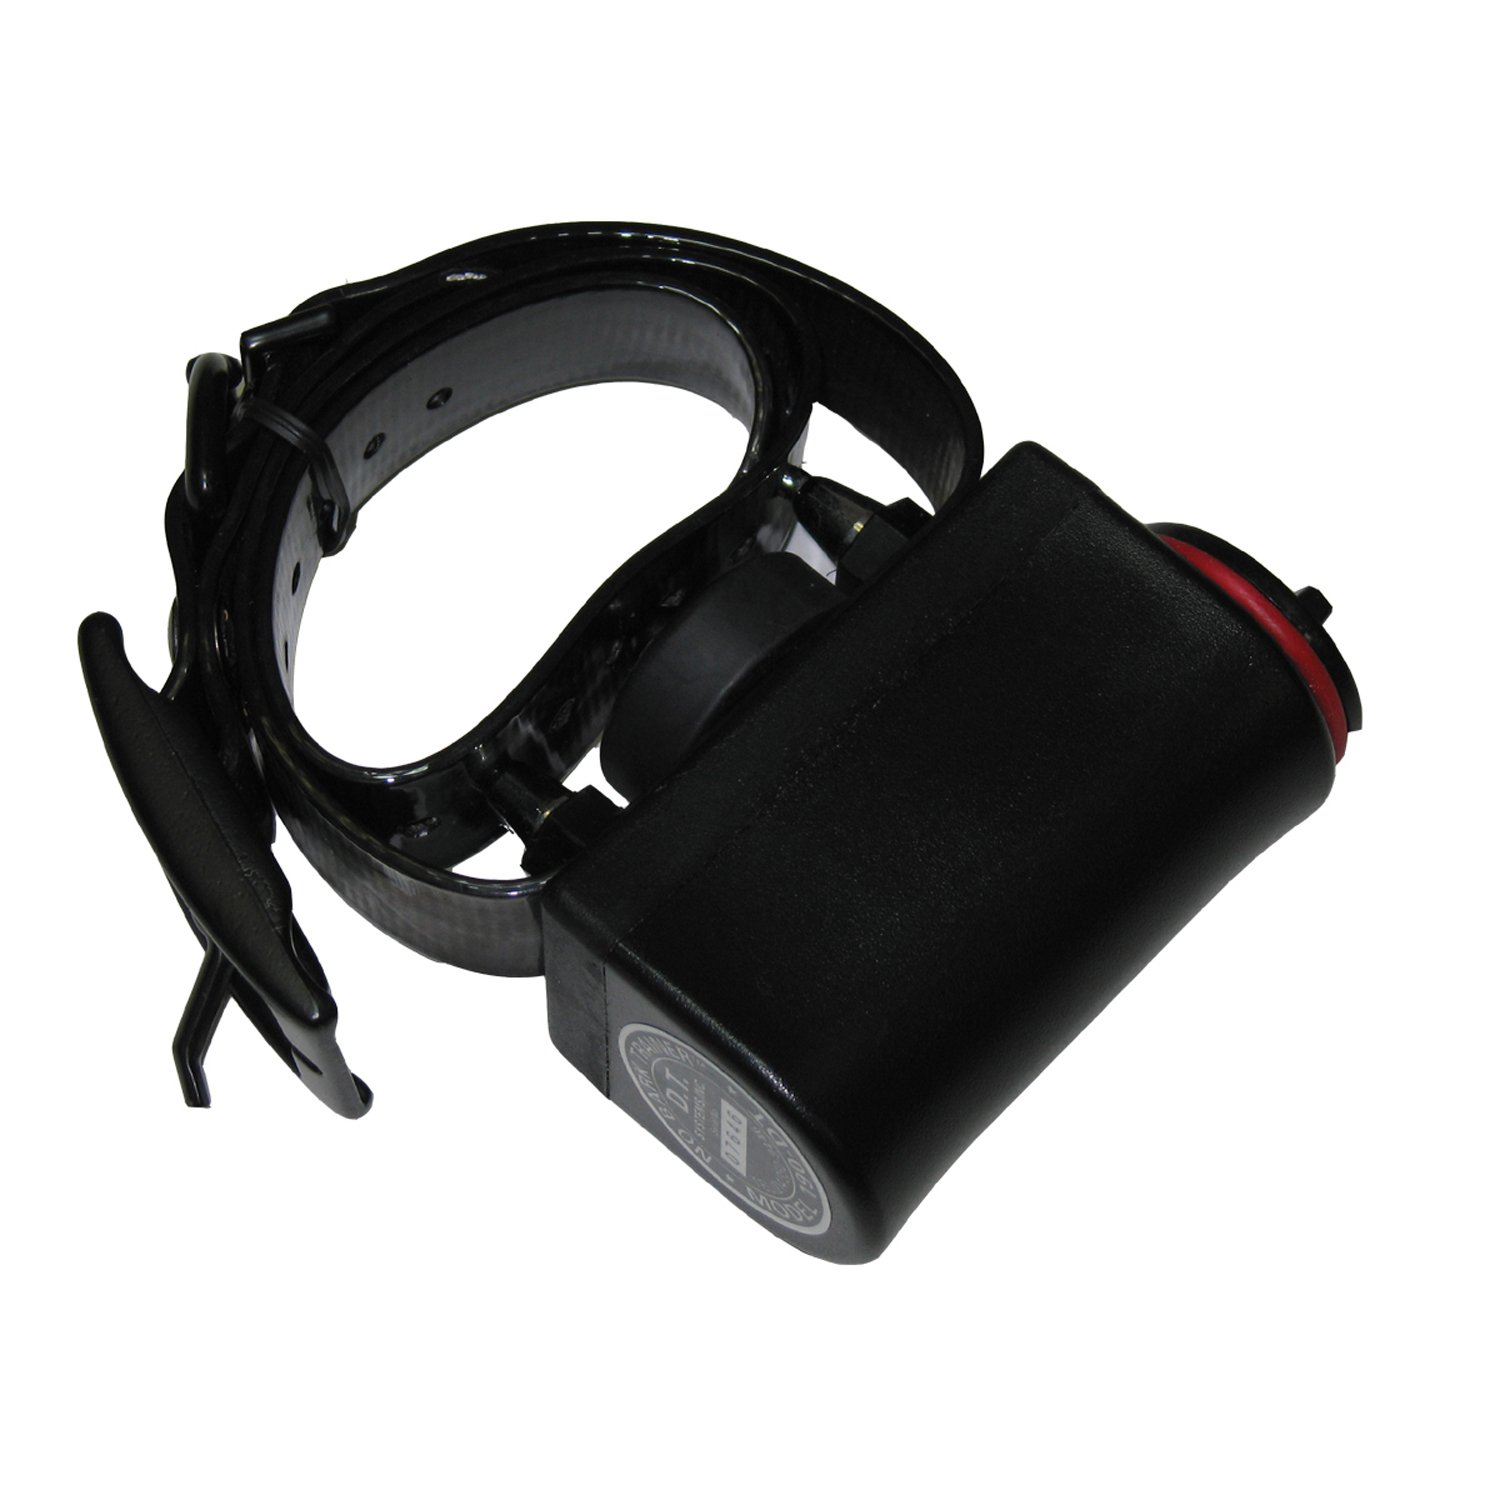 DT Systems No Bark Trainer 190, 9 Levels of Adjustable Intensity, fits Medium to X Large Dogs by D.T. Systems